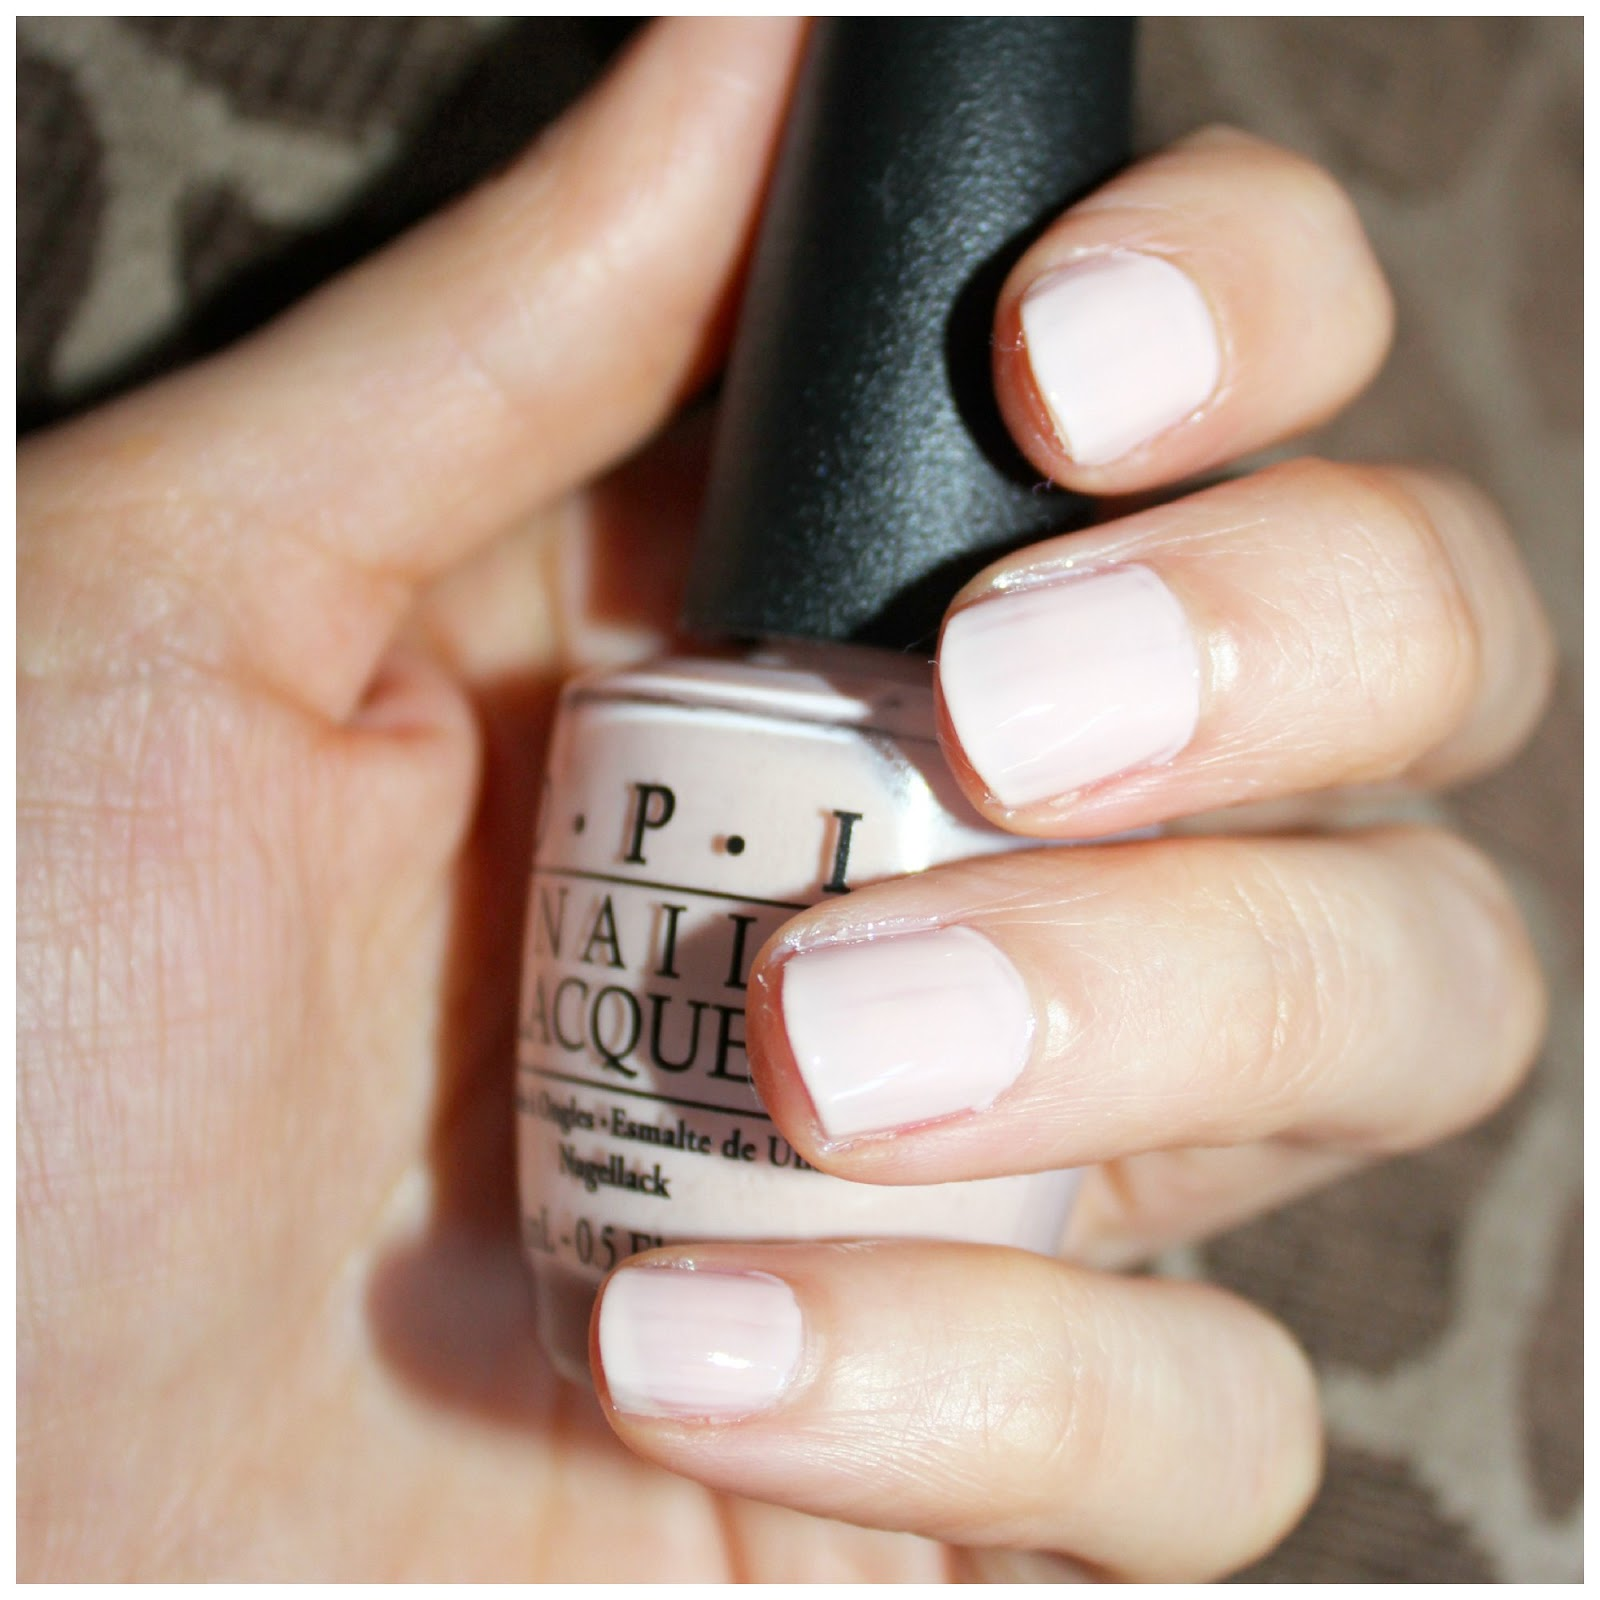 Très beautiful me plus you: OPI Nail Lacquer - Nudes and Pastels TF79